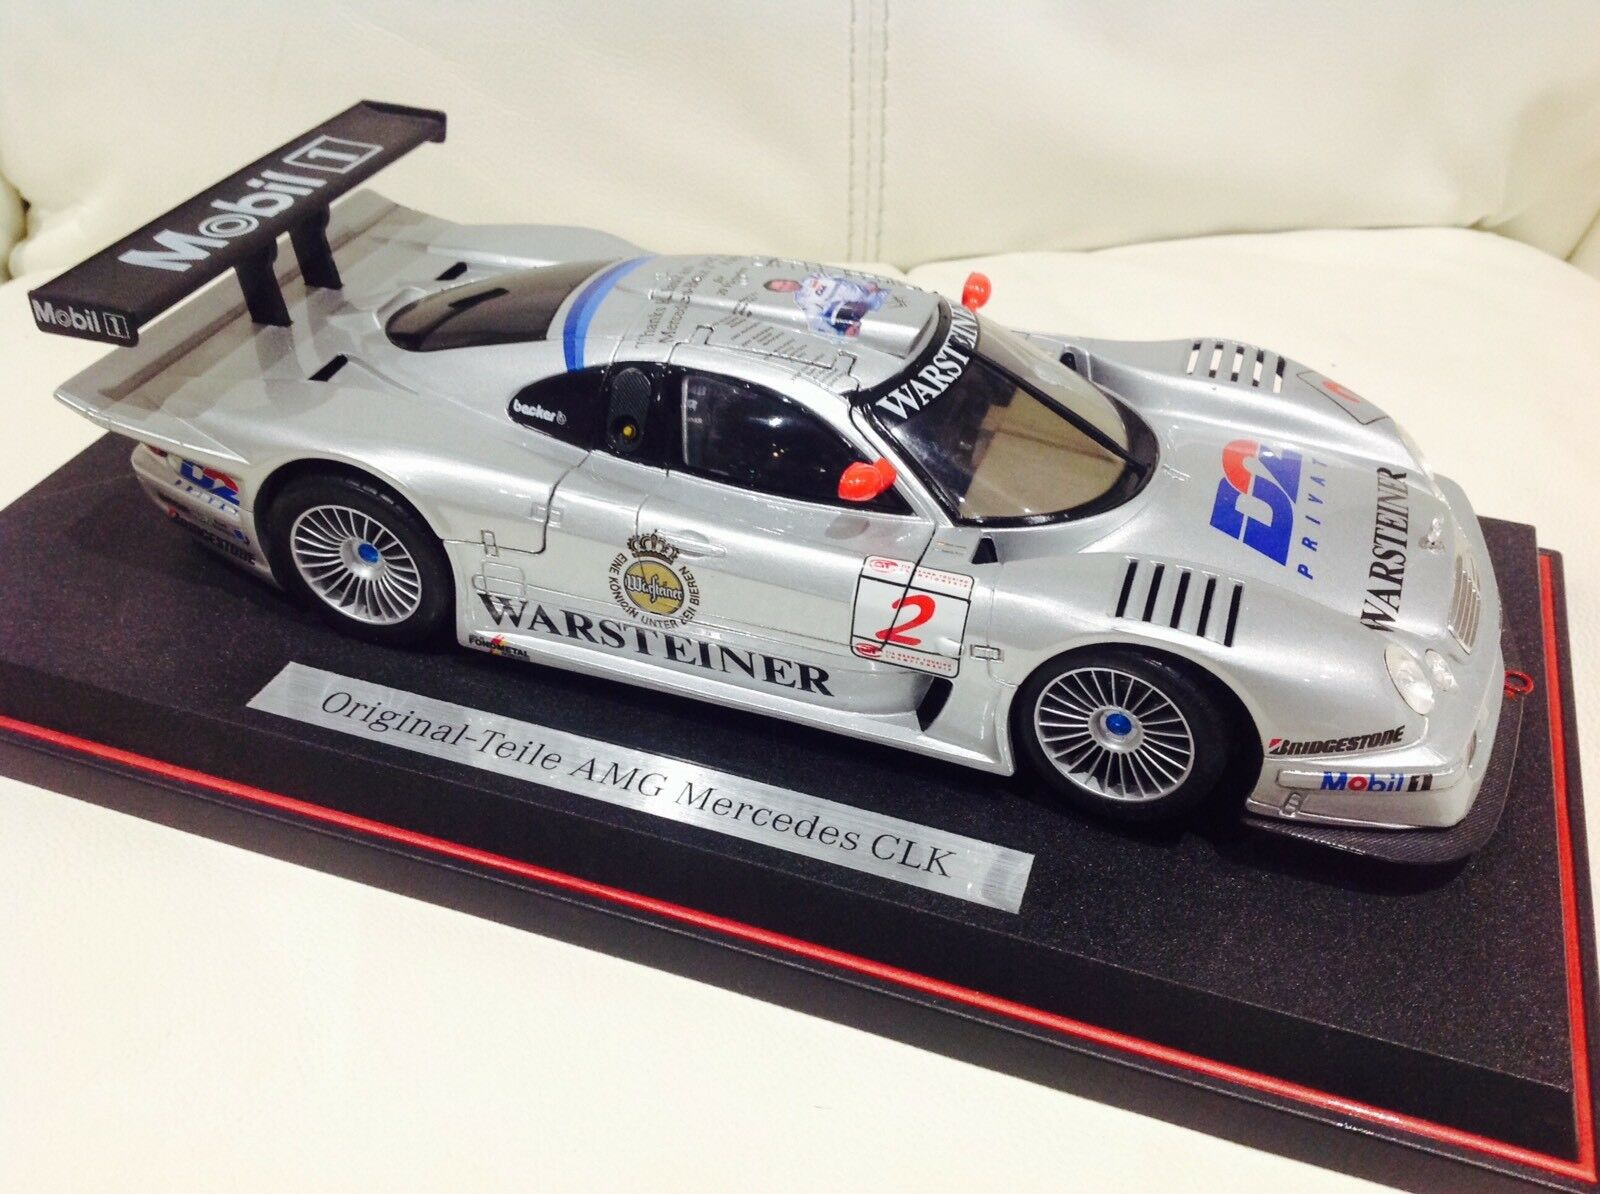 1 1 1 18 SCALE MERCEDES BENZ ORIGINAL TEILE AMG CLK MOTORSPORT EDITION 770ebd